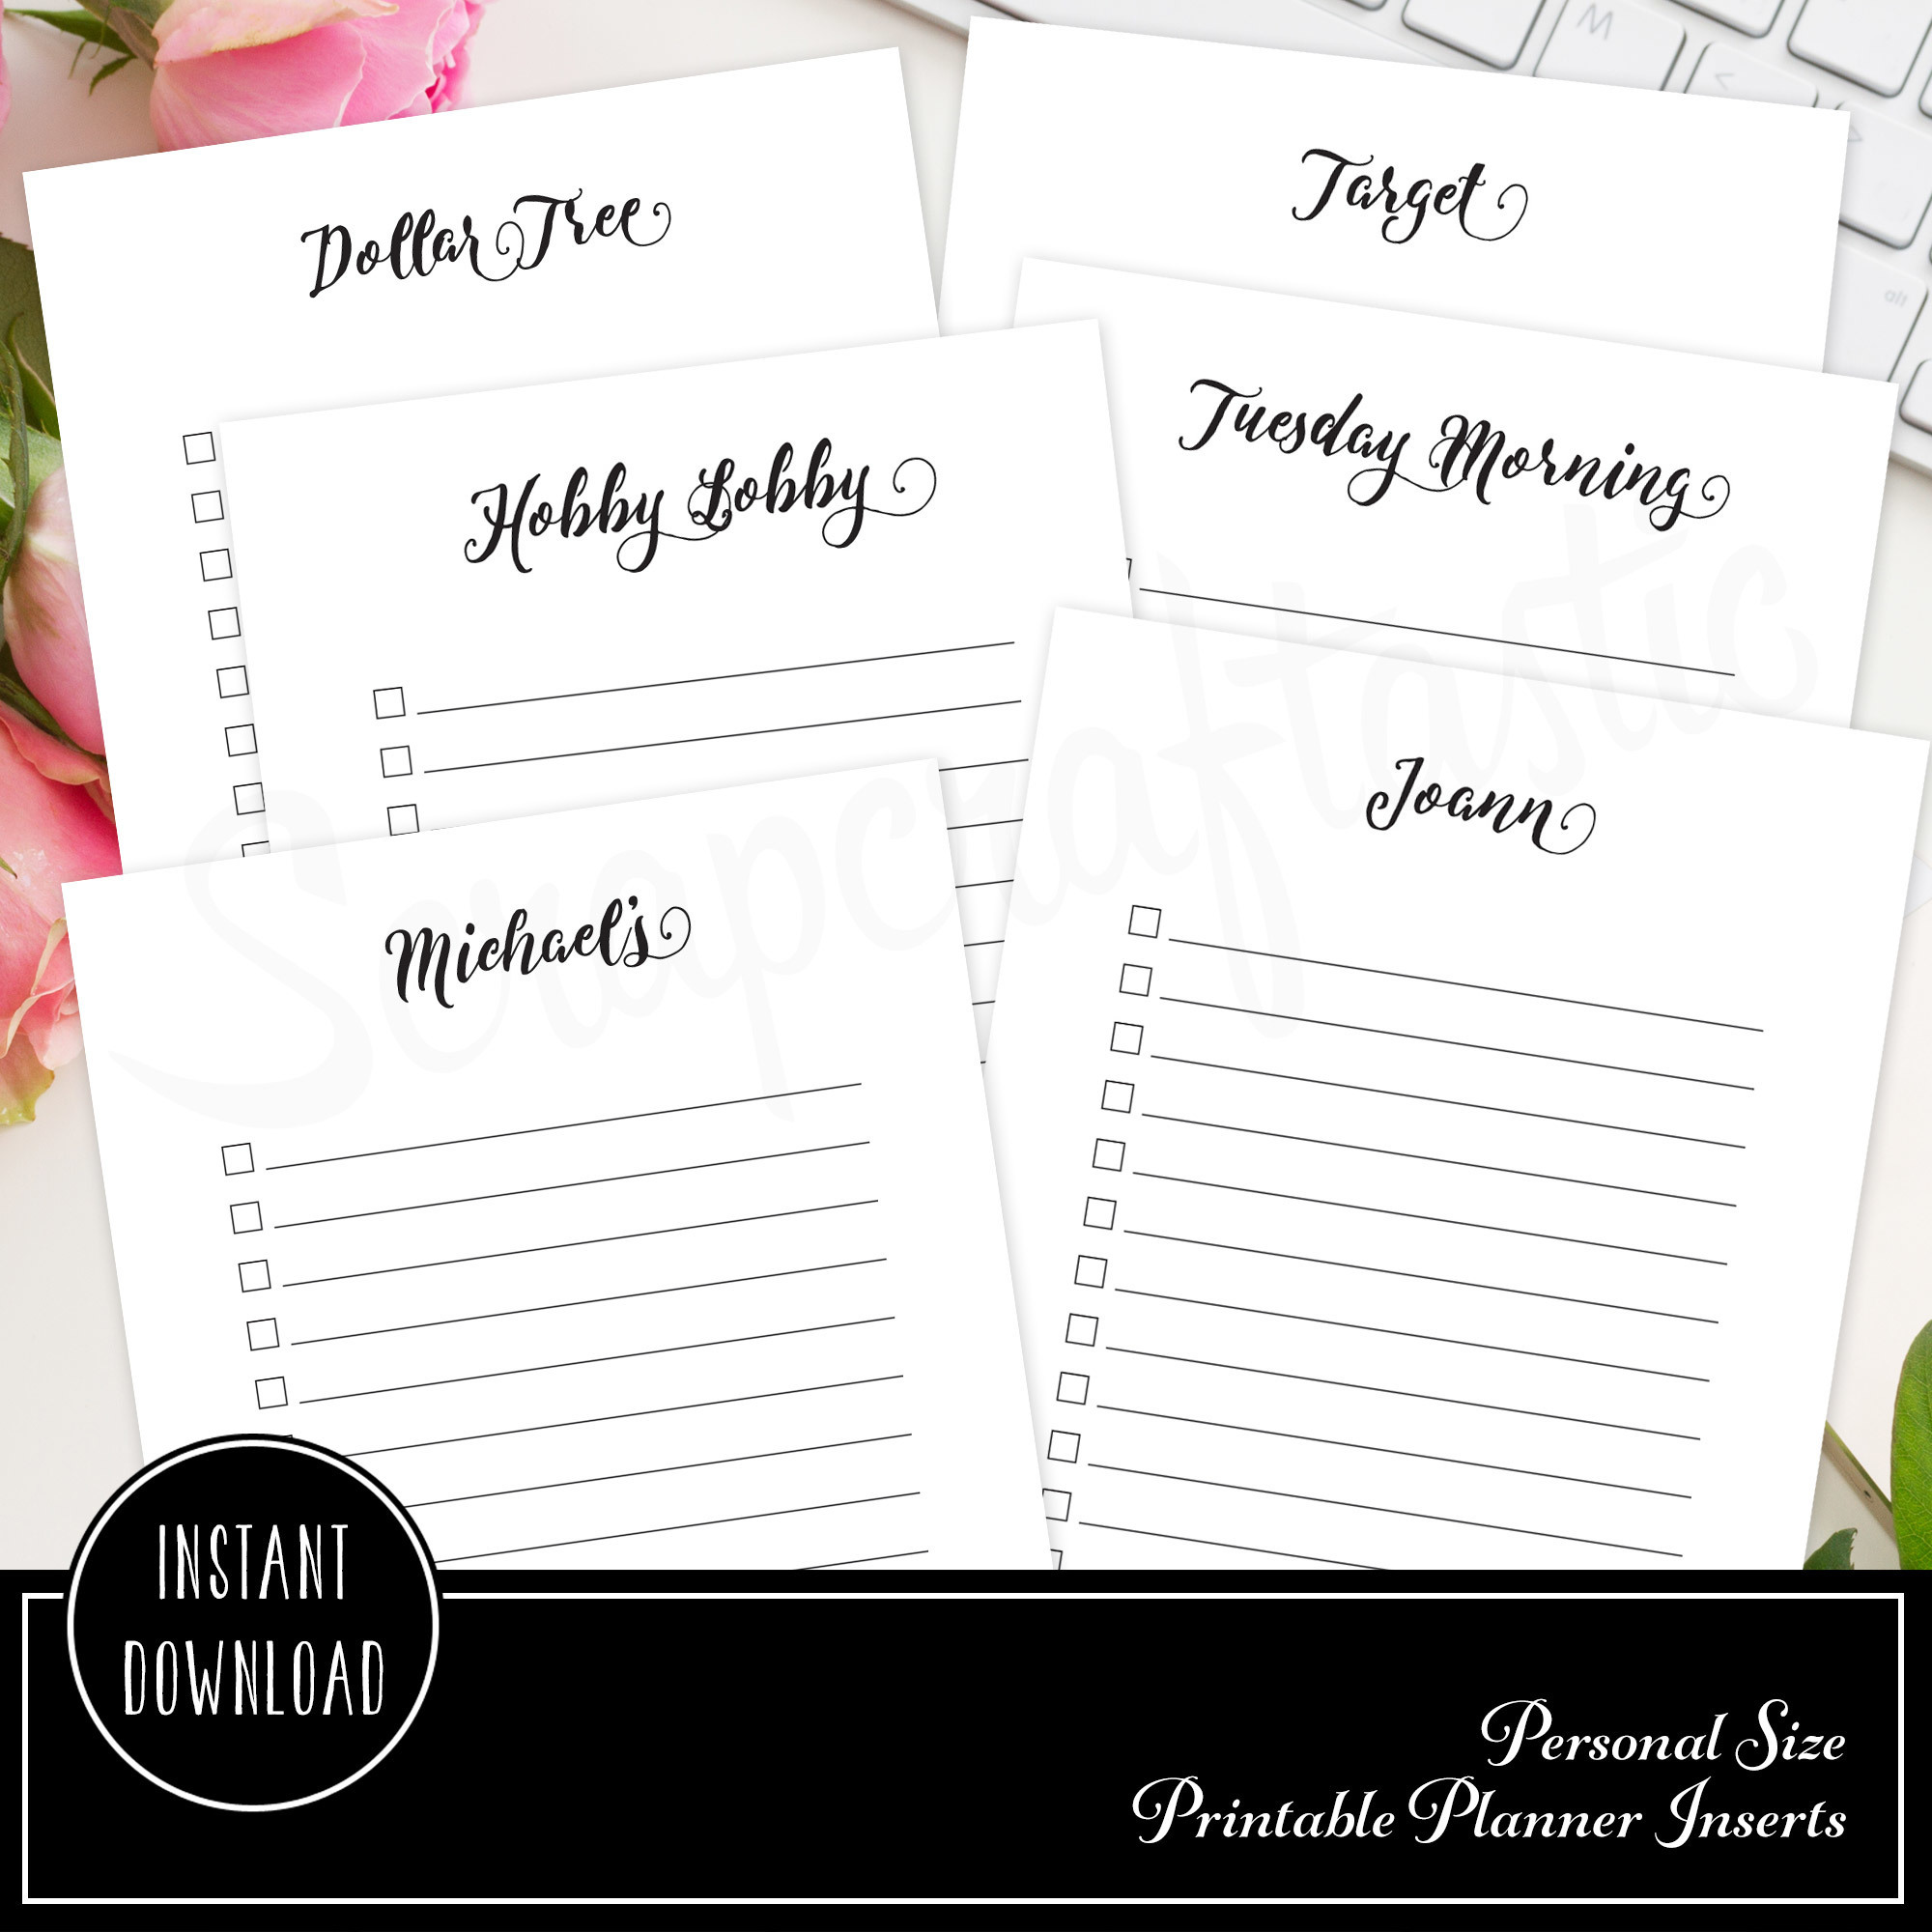 [PRINTED] Shopping Check List Personal Size Printable Planner Inserts 09004